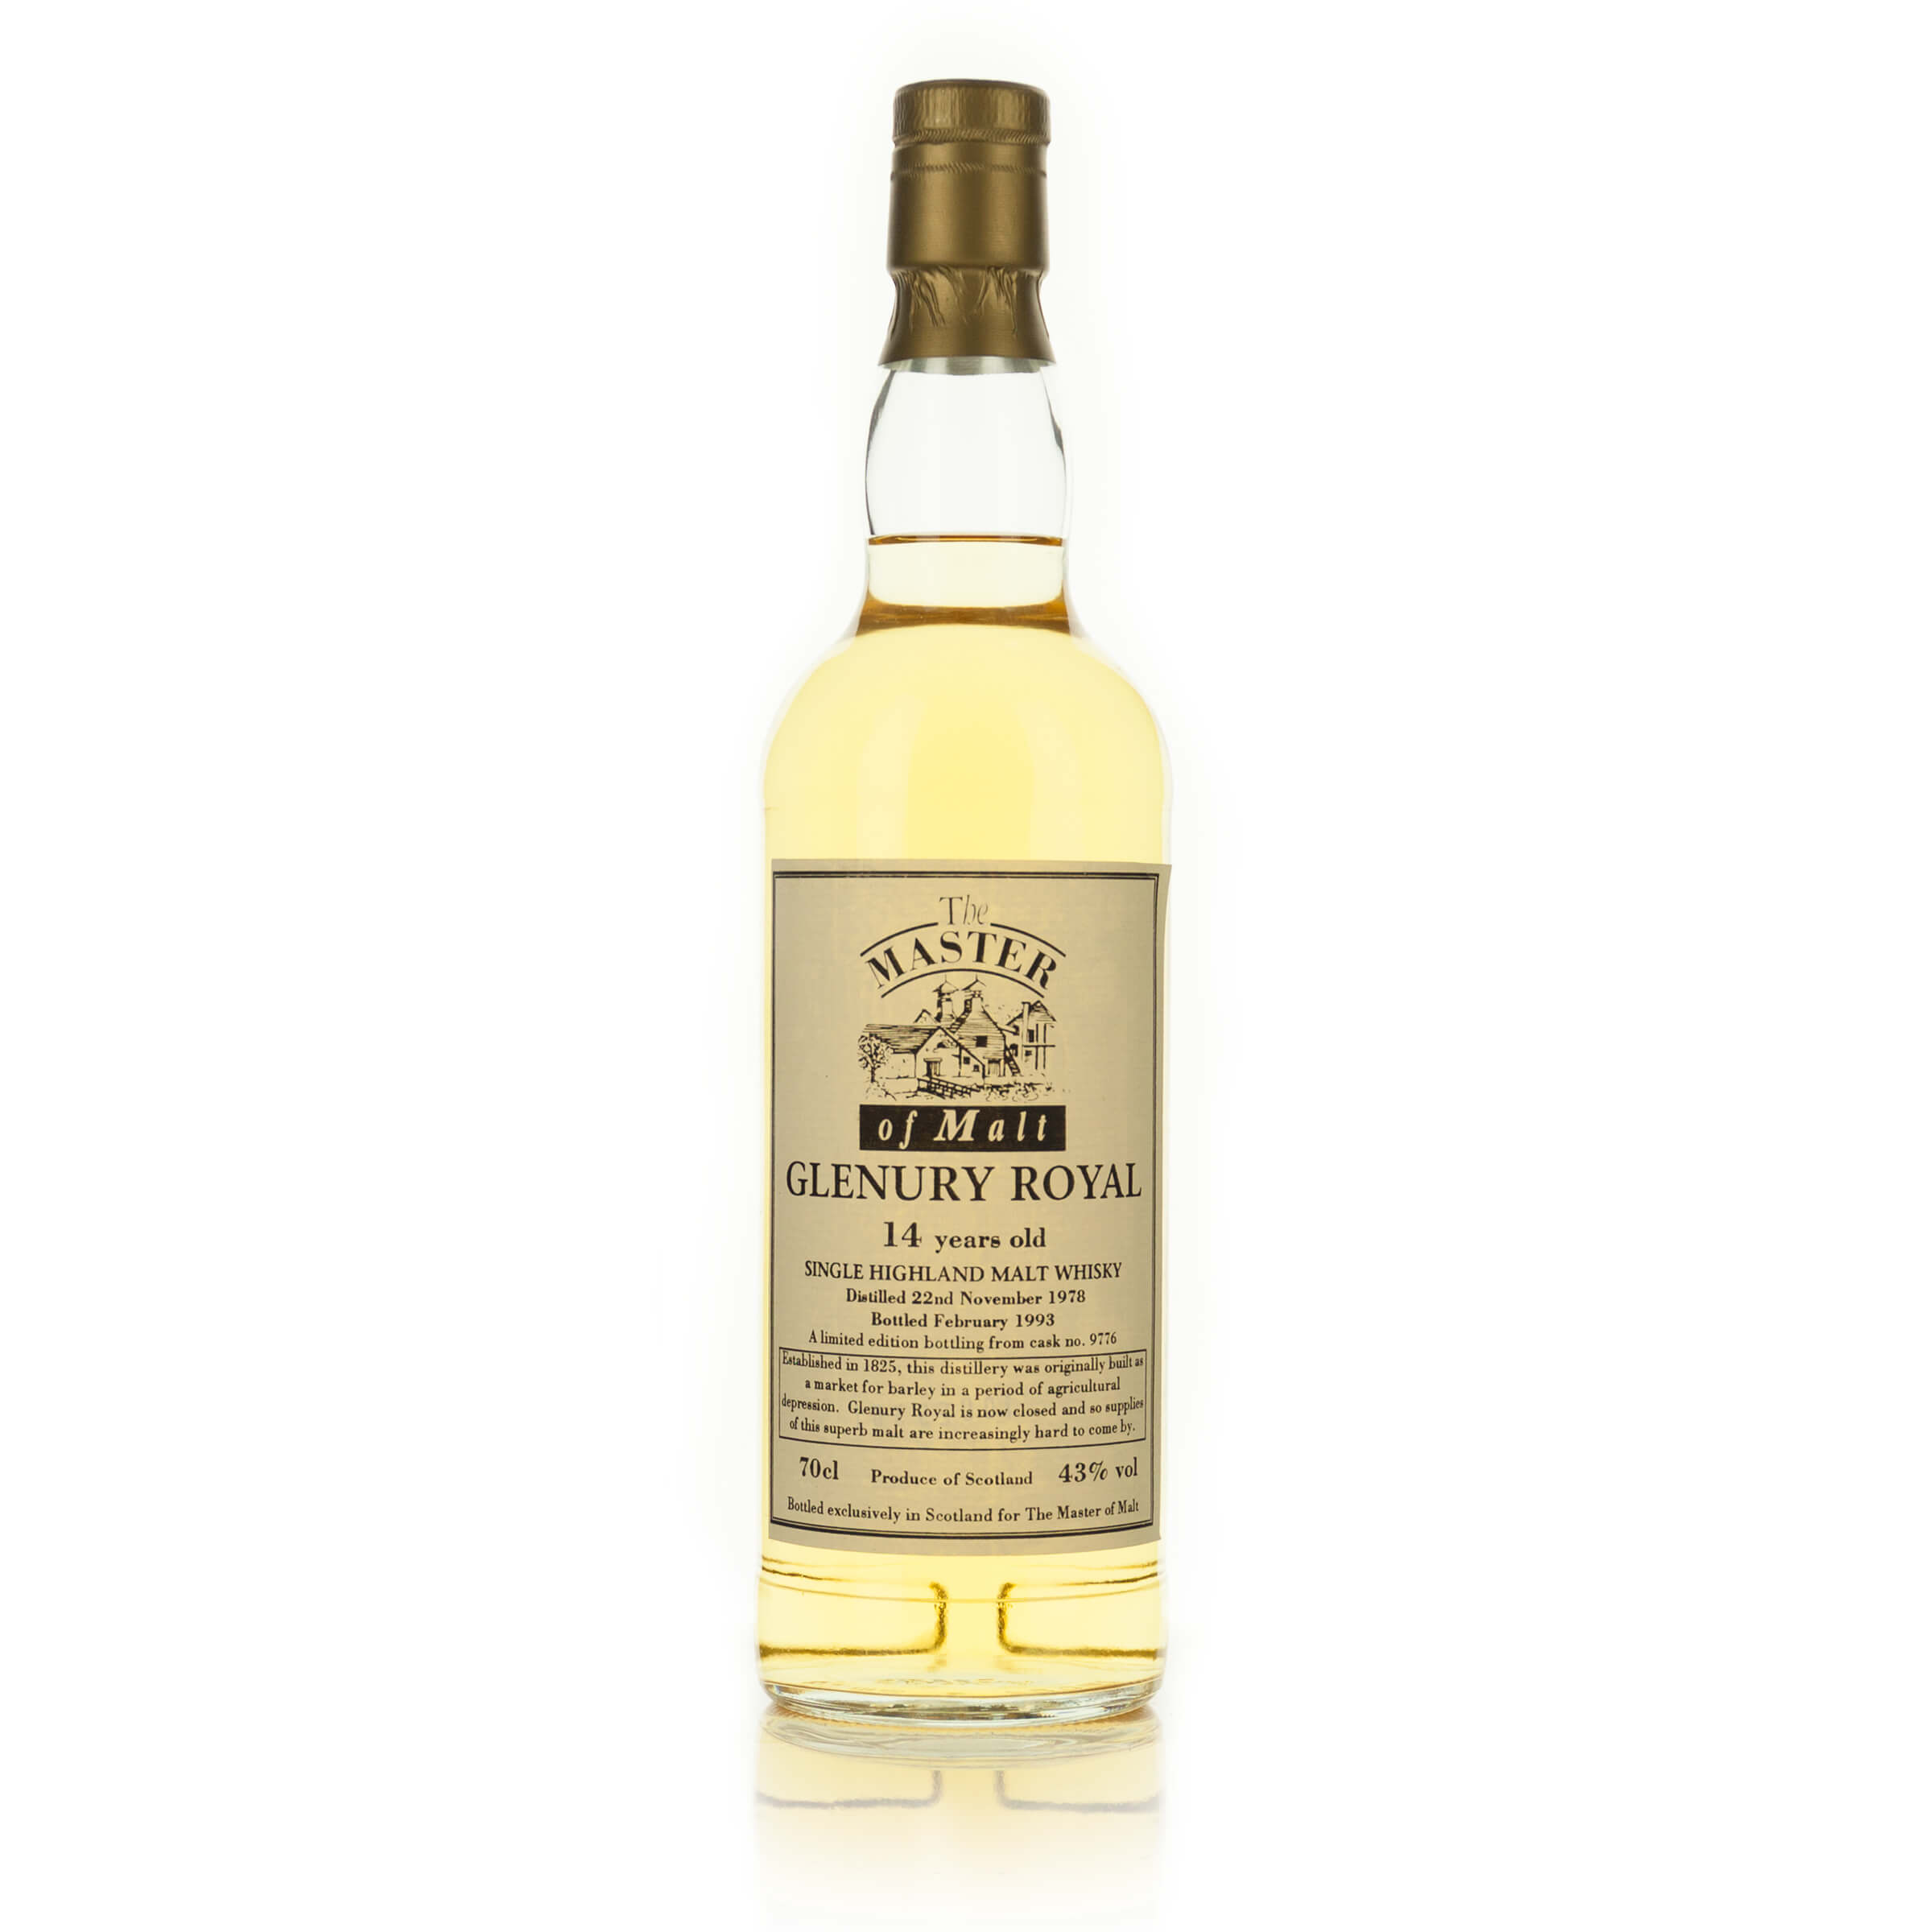 GLENURY ROYAL SINGLE MALT SCOTCH WHISKY 16 YEARS (ONE 750 ML)